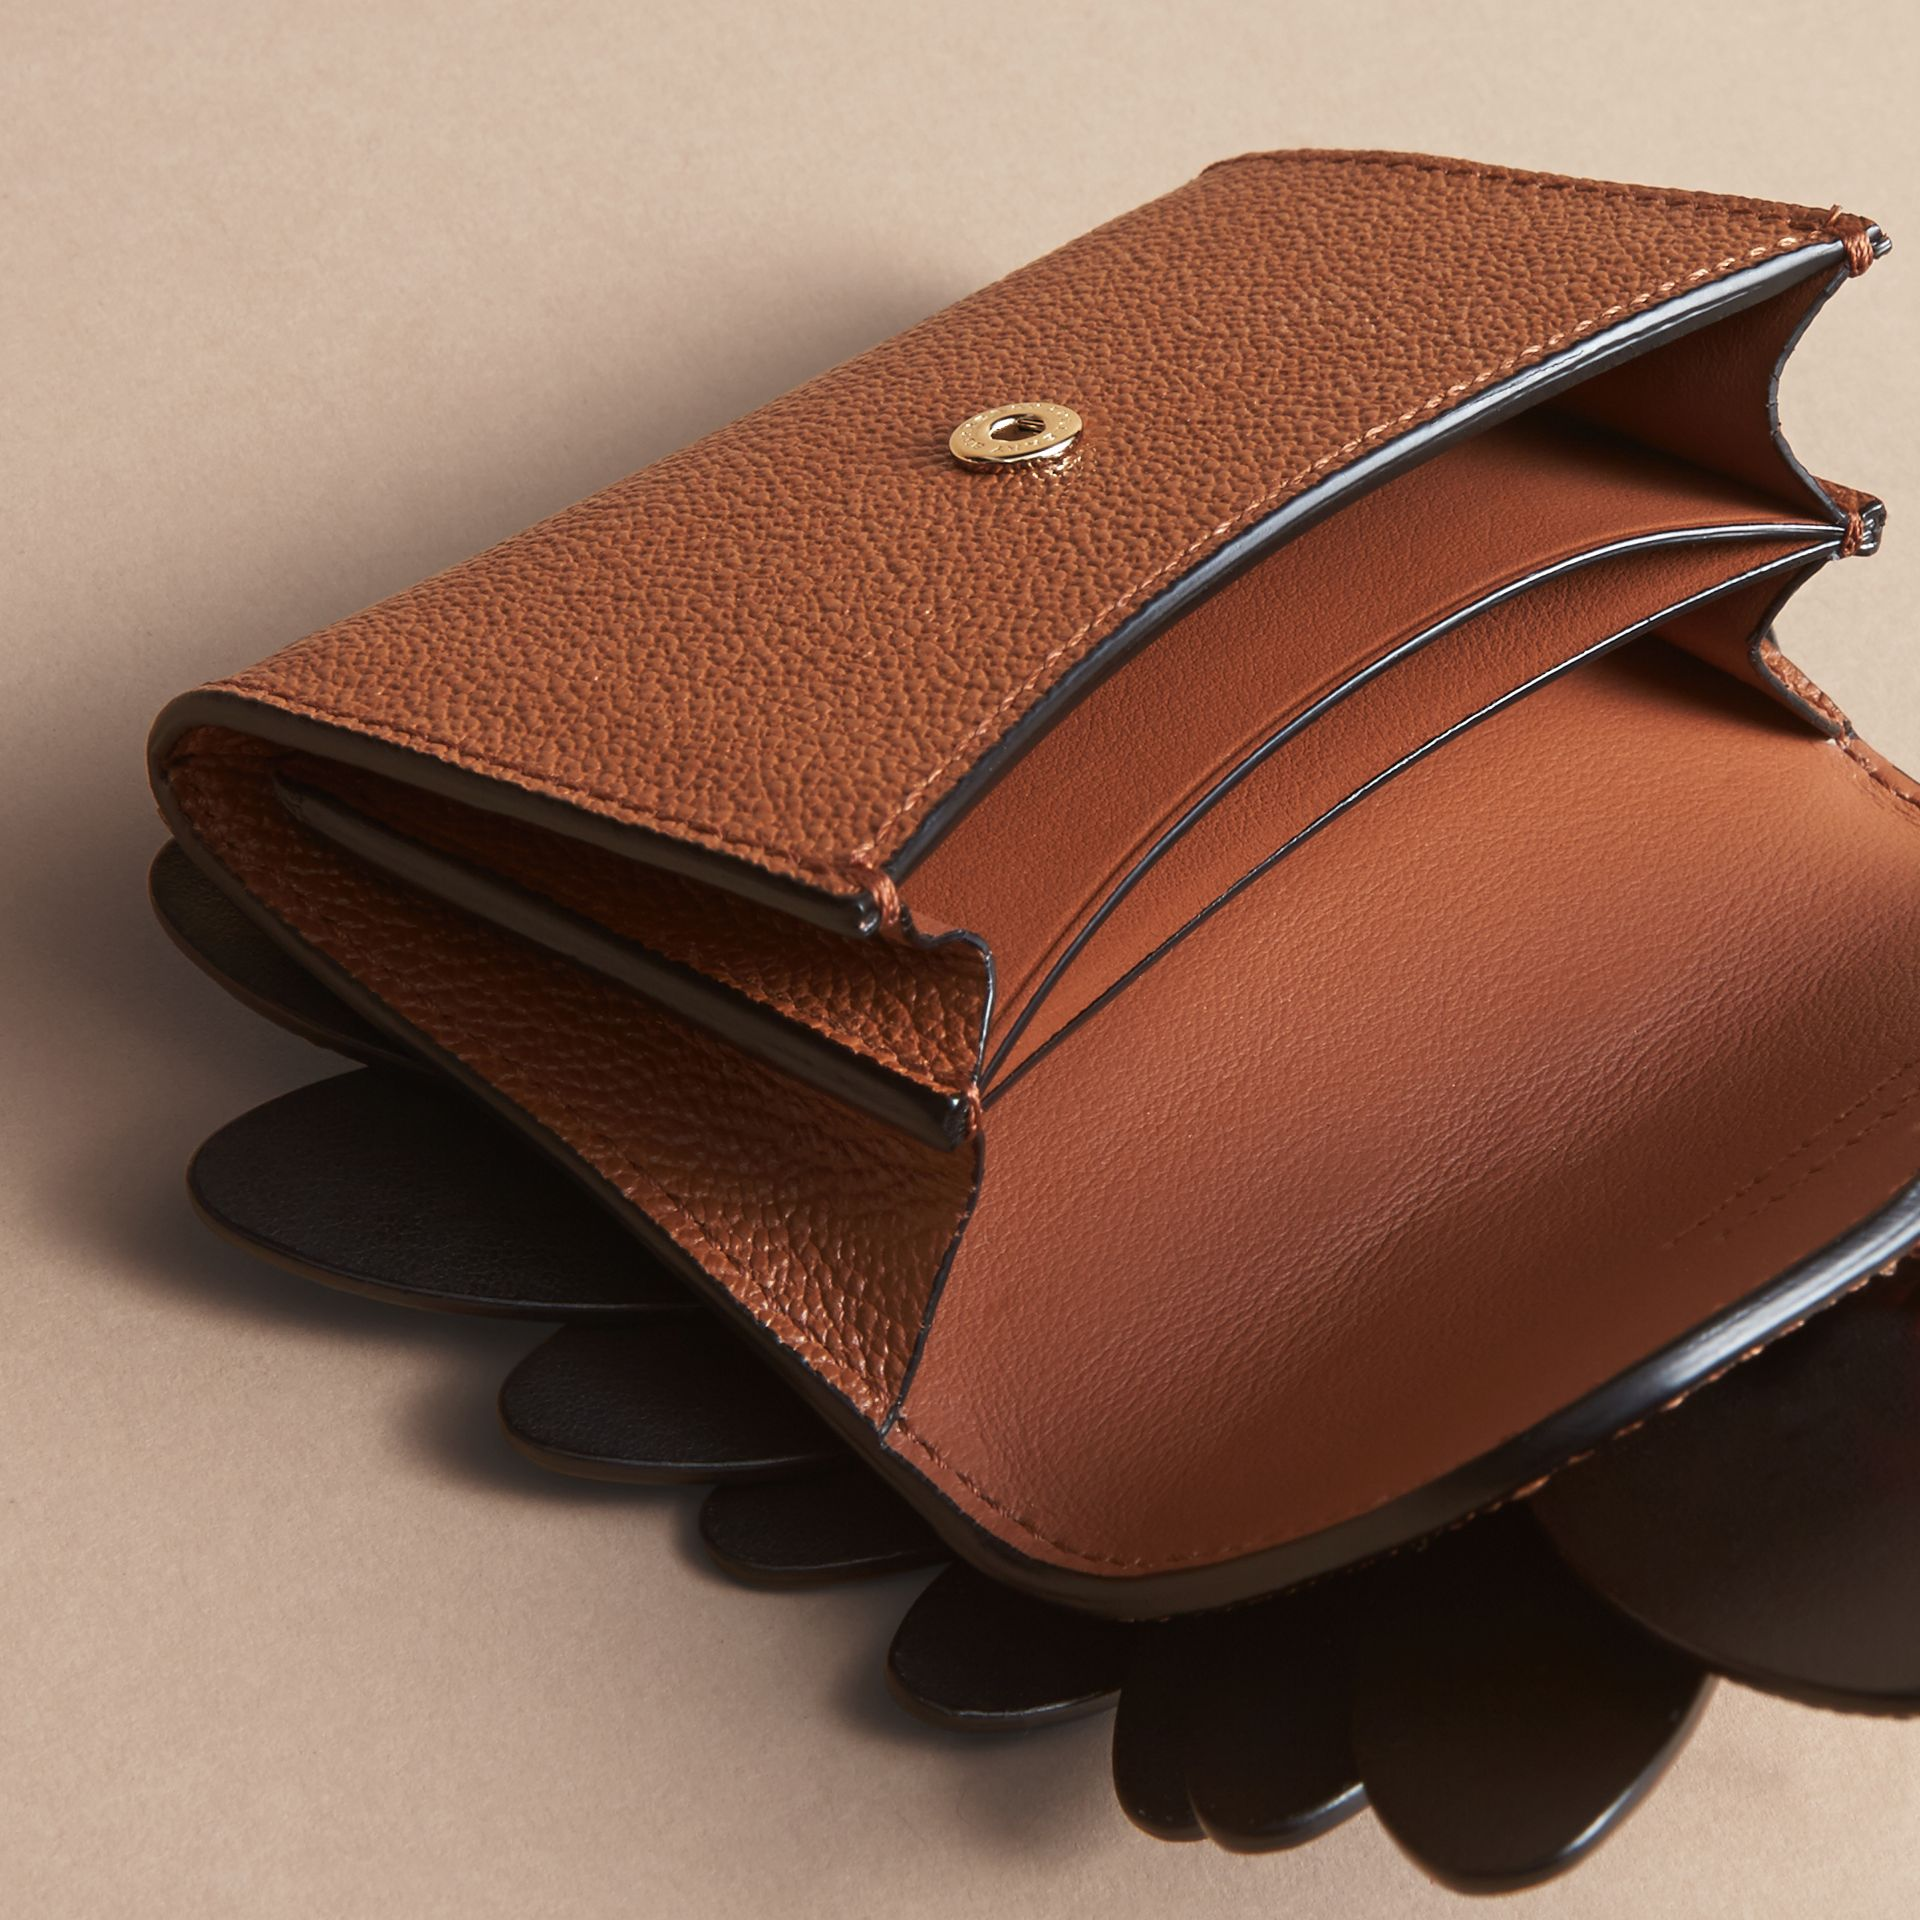 Snakeskin and Leather Appliqué Card Case in Bright Toffee - Women | Burberry - gallery image 4